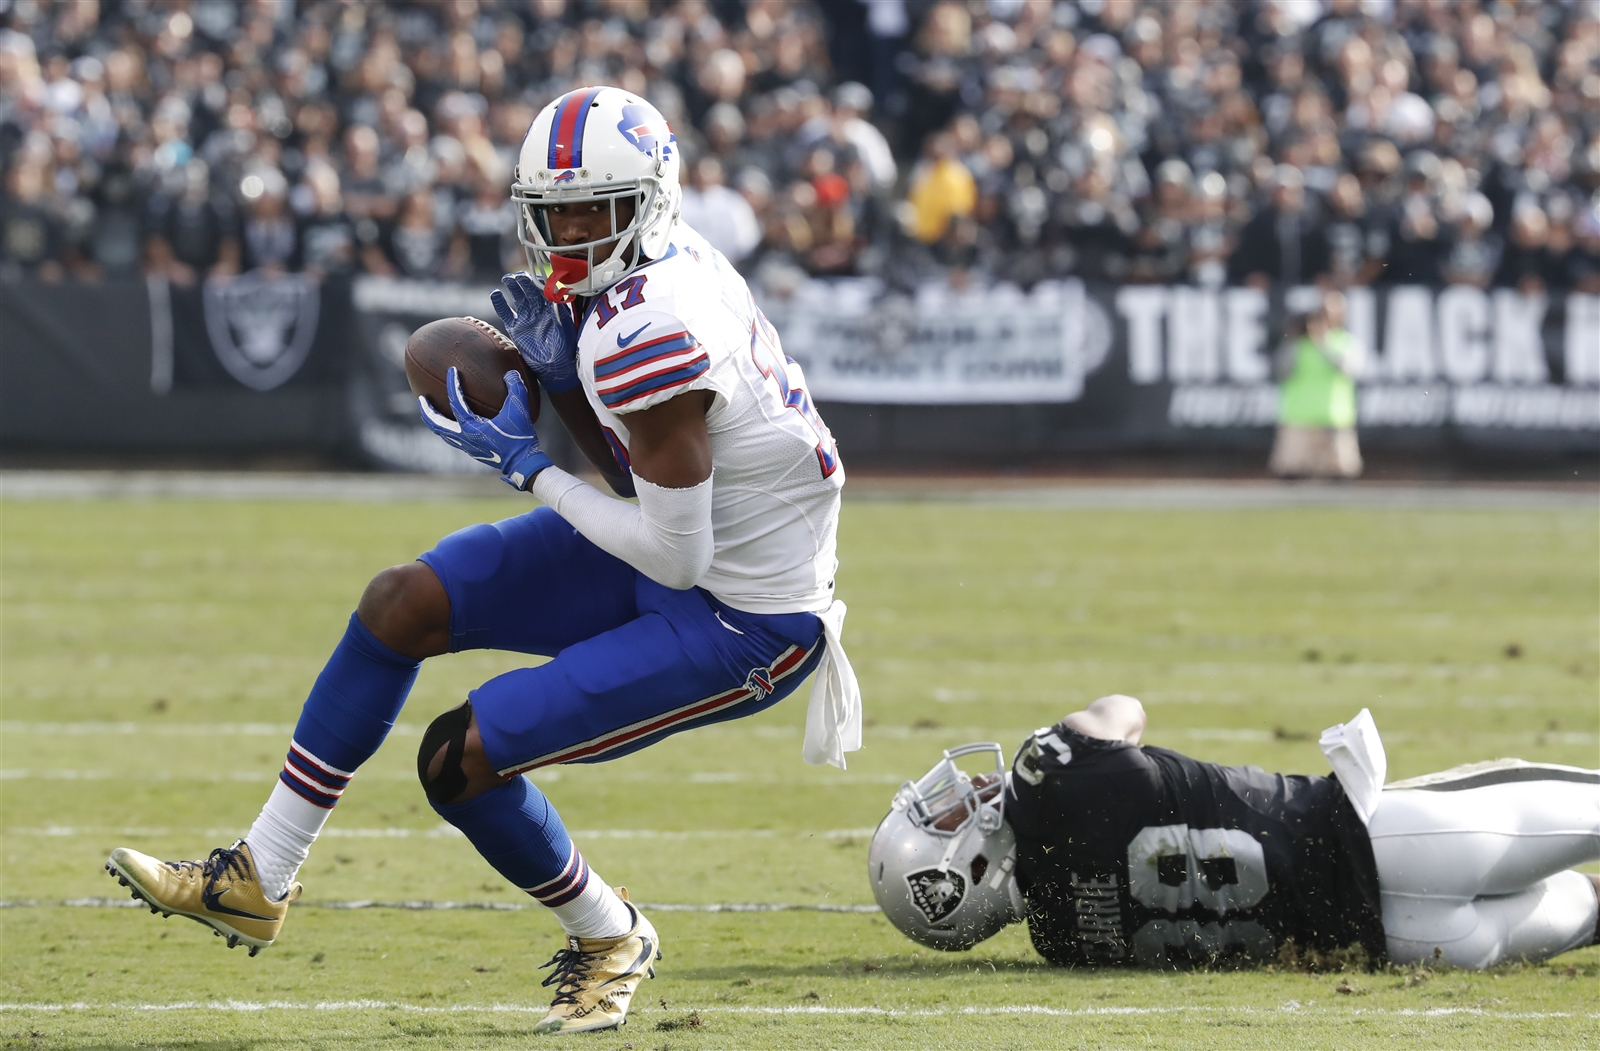 BILLS PASSING GAME (F): Itu2019s a problem when McCoy is the teamu2019s leading receiver, as he was with seven catches for 61 yards. Buffalou2019s longest completion was a 22-yarder to Justin Hunter that served as his only catch. Tyrod Taylor has now gone three straight games throwing for less than 200 yards. He and Sammy Watkins clearly werenu2019t on the same page on at least a couple occasions Sunday. The injuries at wide receiver certainly donu2019t help, but that excuse is getting old. General Manager Doug Whaley can share some of the blame for mismanaging the position if the players on the field canu2019t get it done.